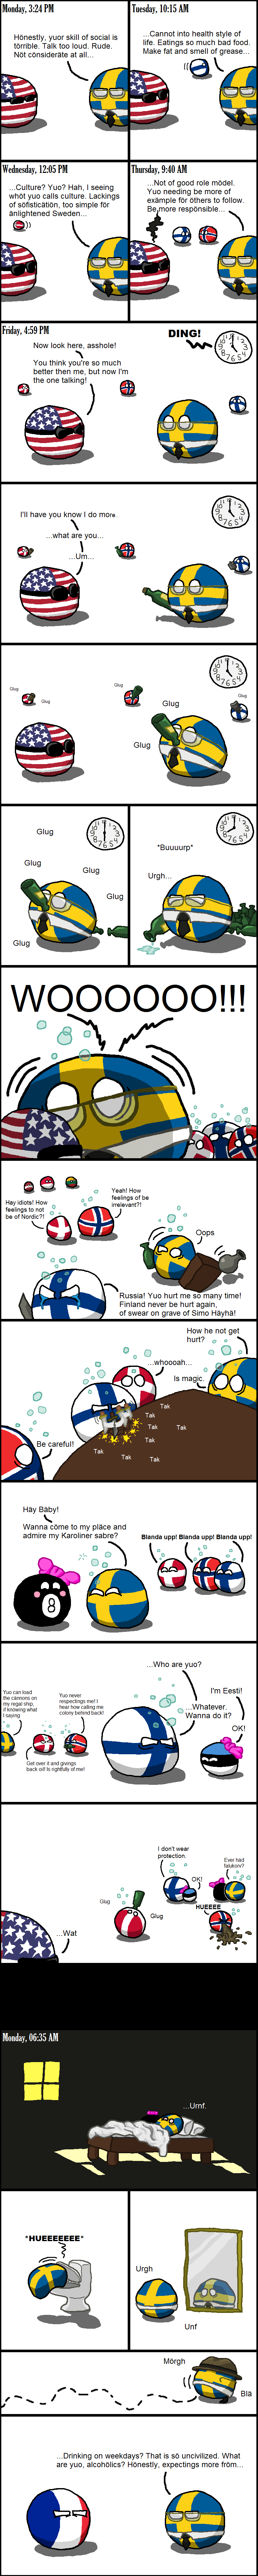 country-balls-the-nordic-model